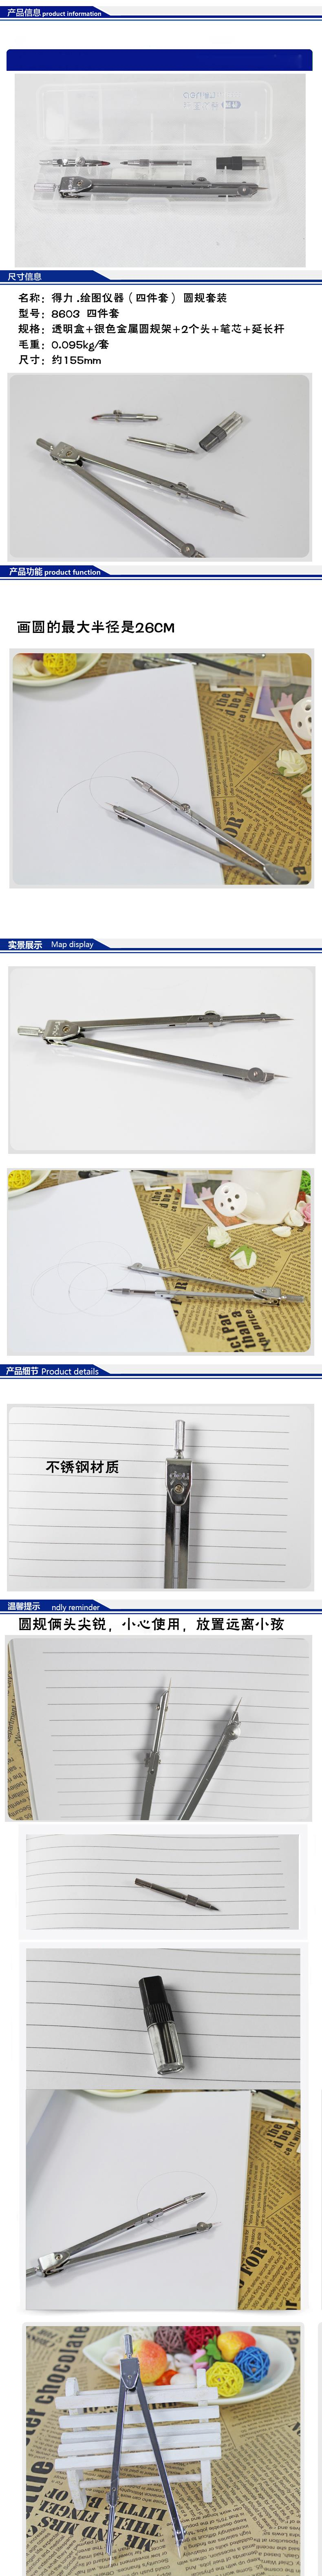 Deli 8603 Graphics Compass Set 4 Duck Mouth Drawing Bofa Set